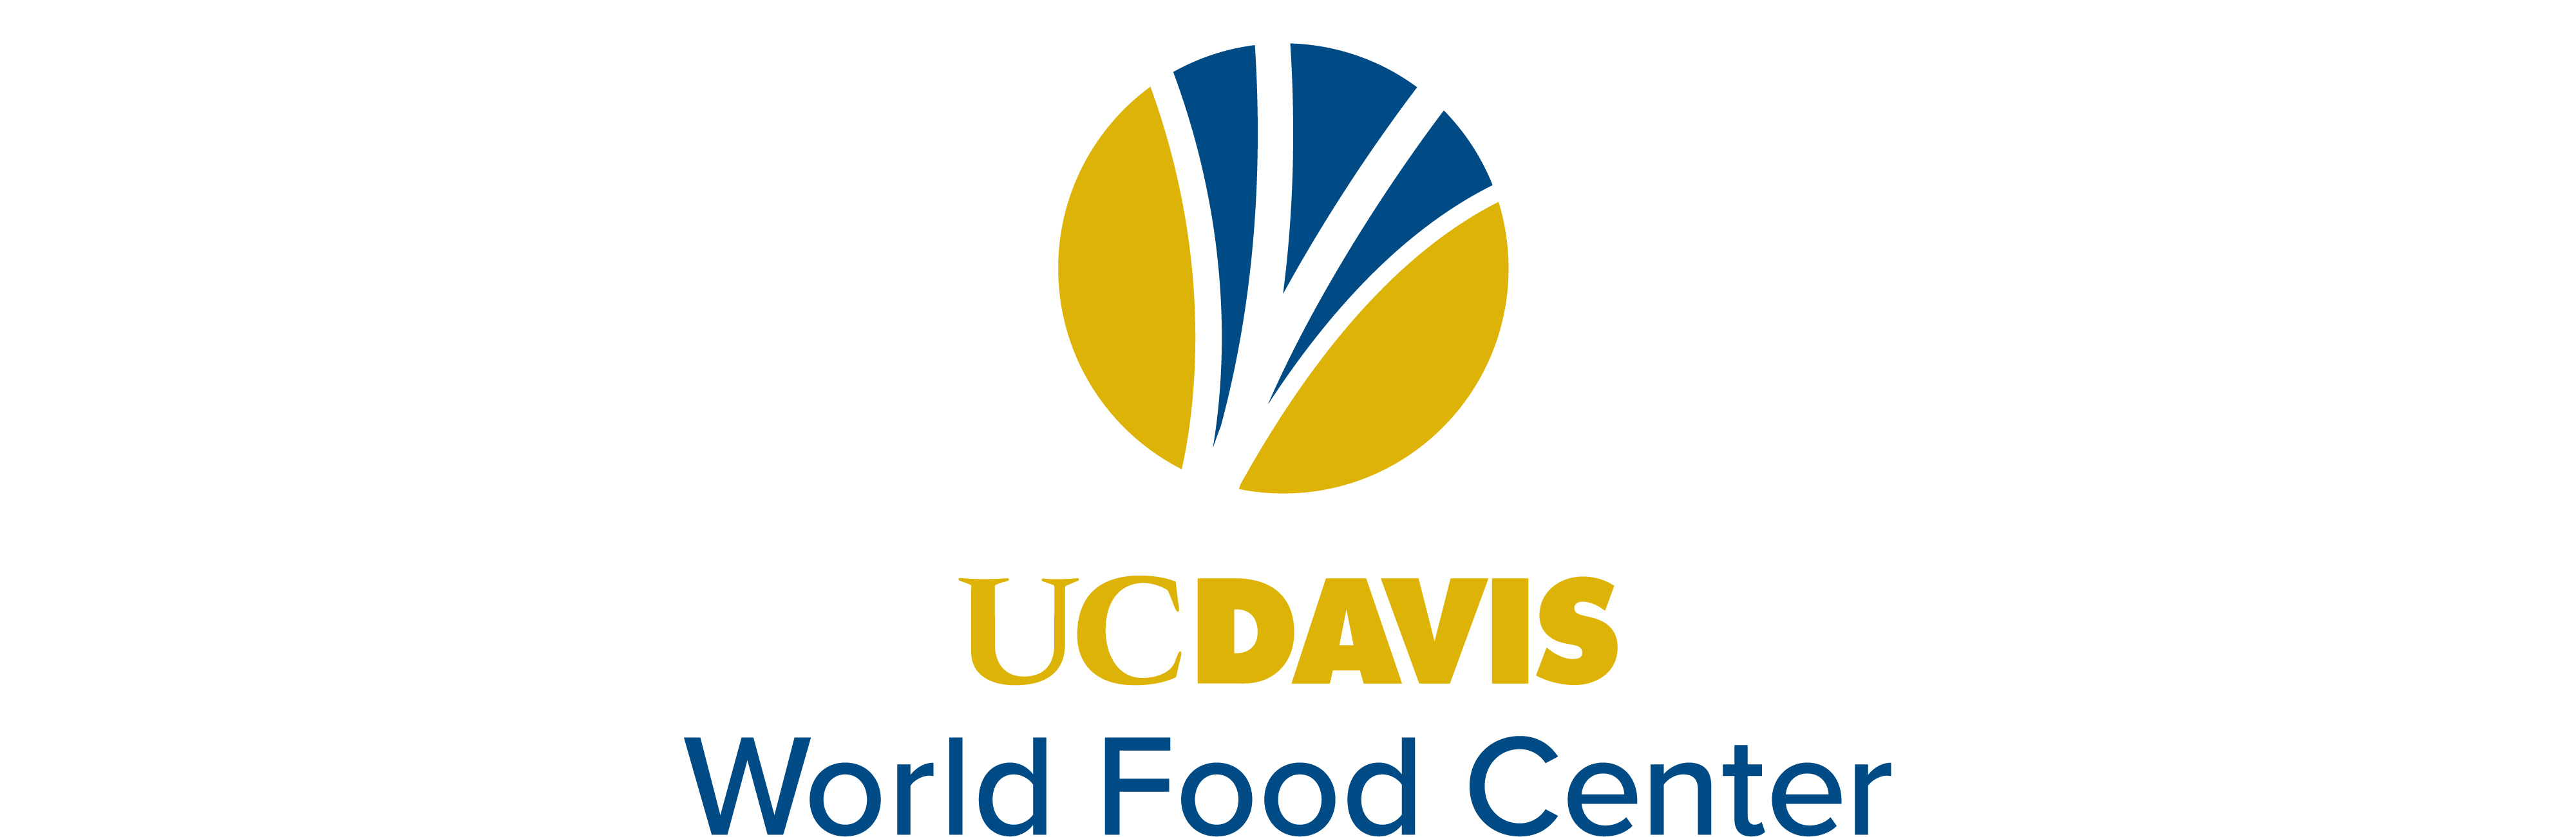 UC Davis World Food Center